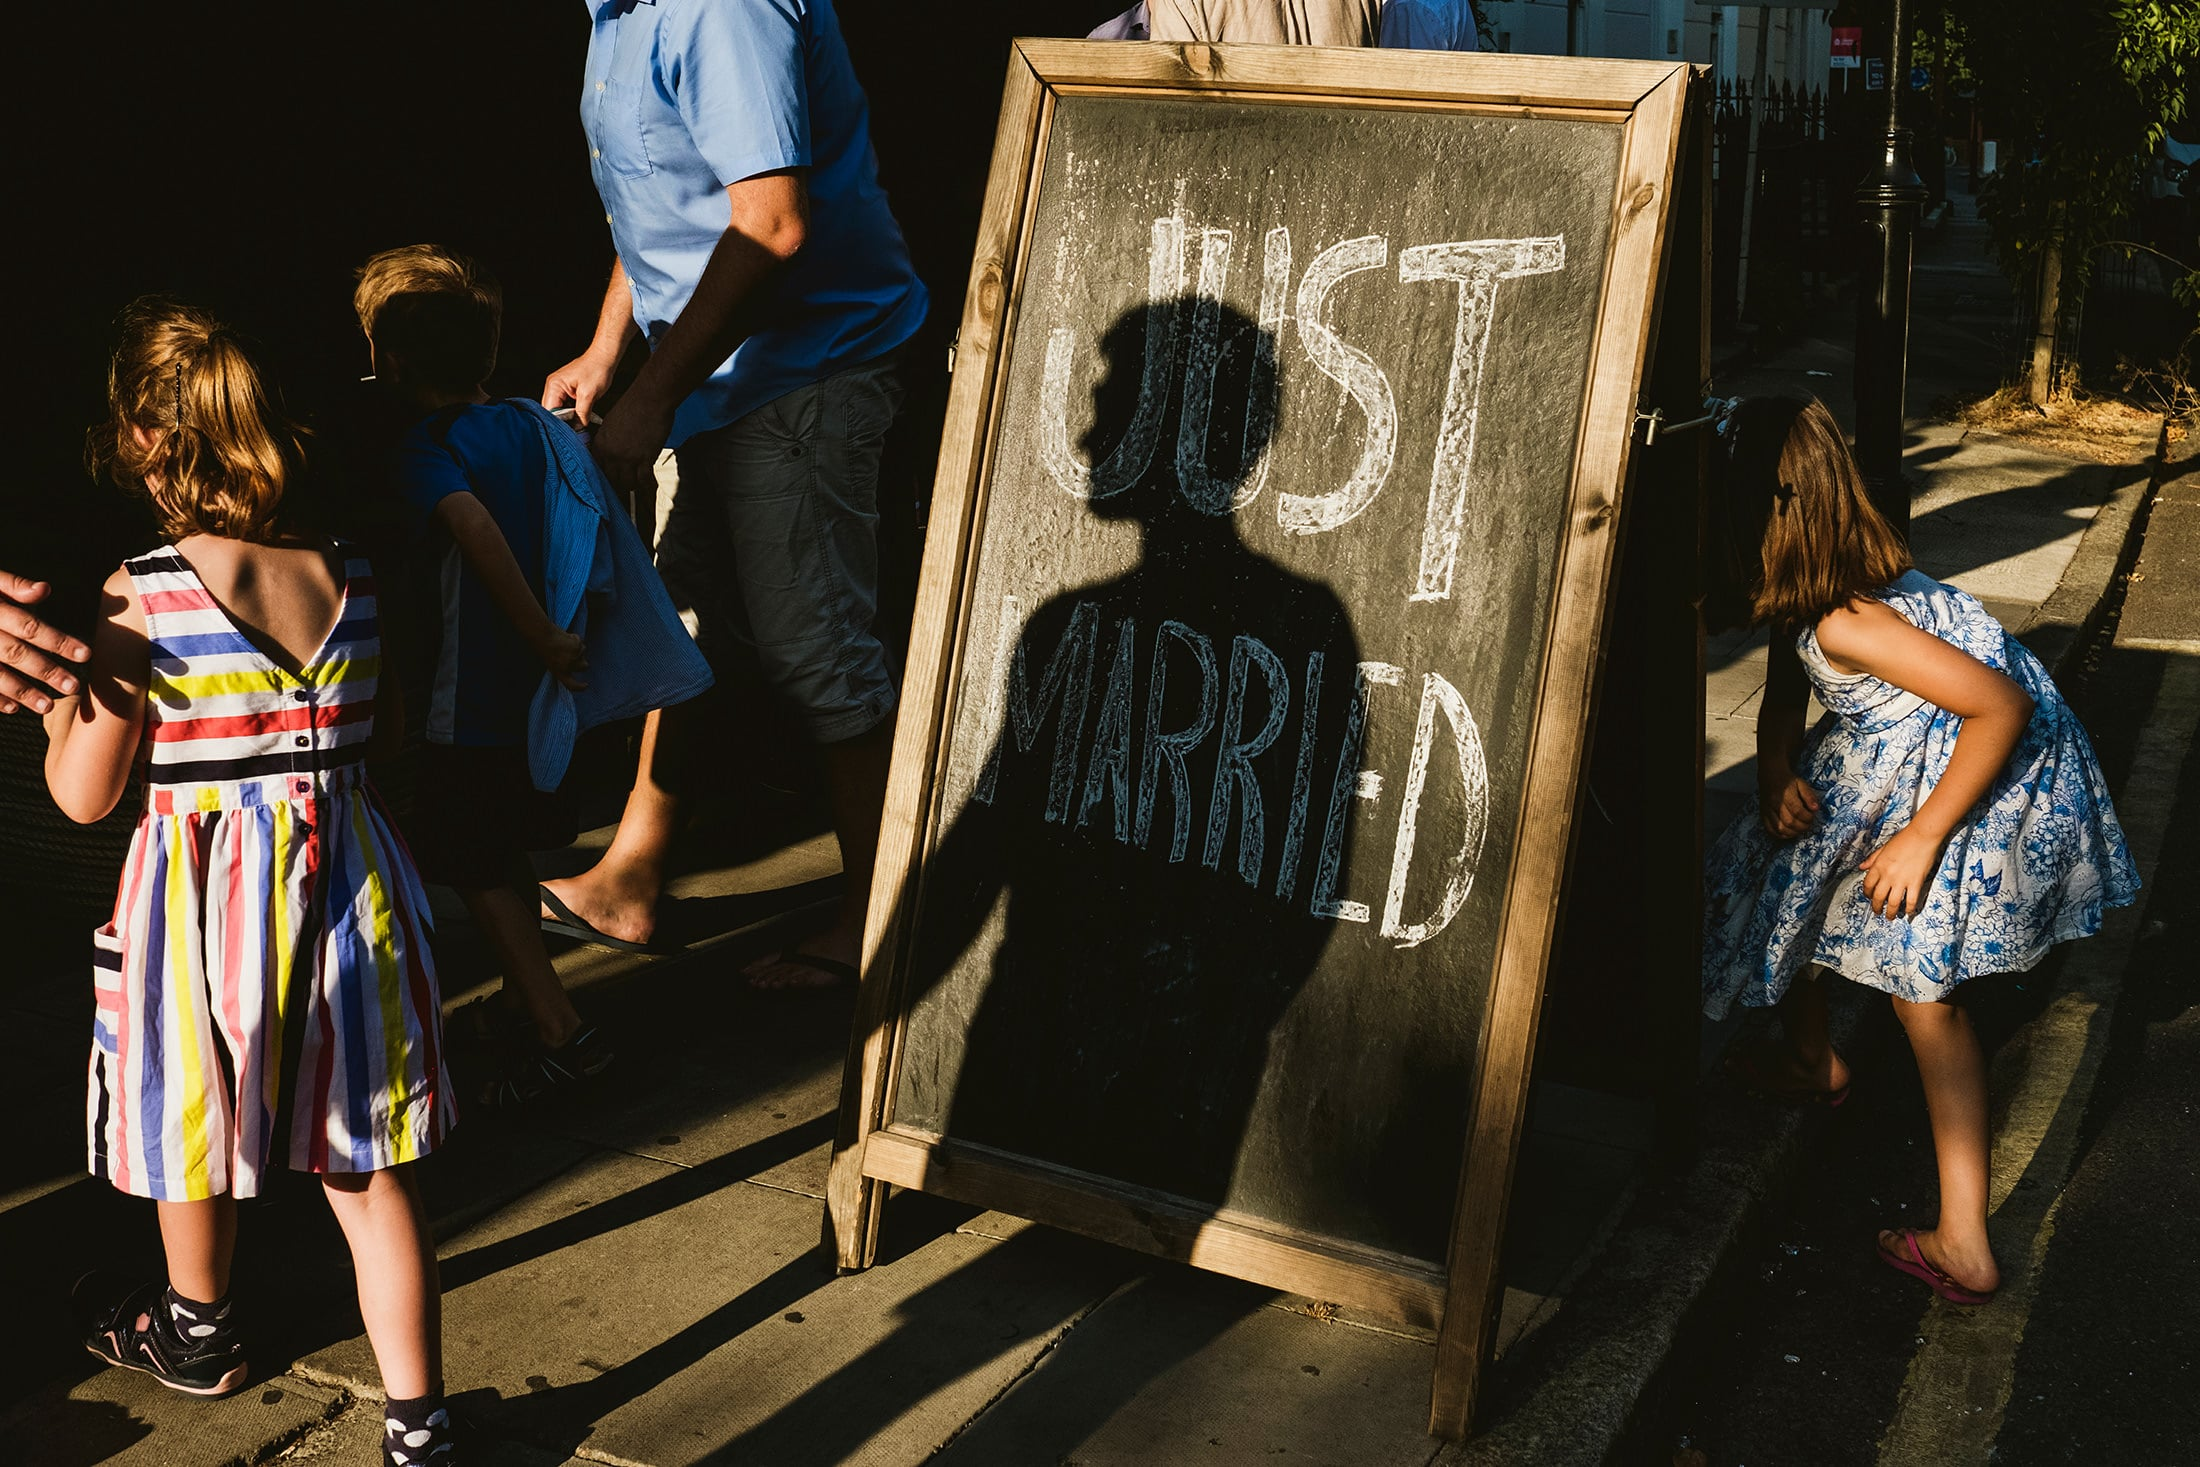 light and shadow on a Just Married chalk sign